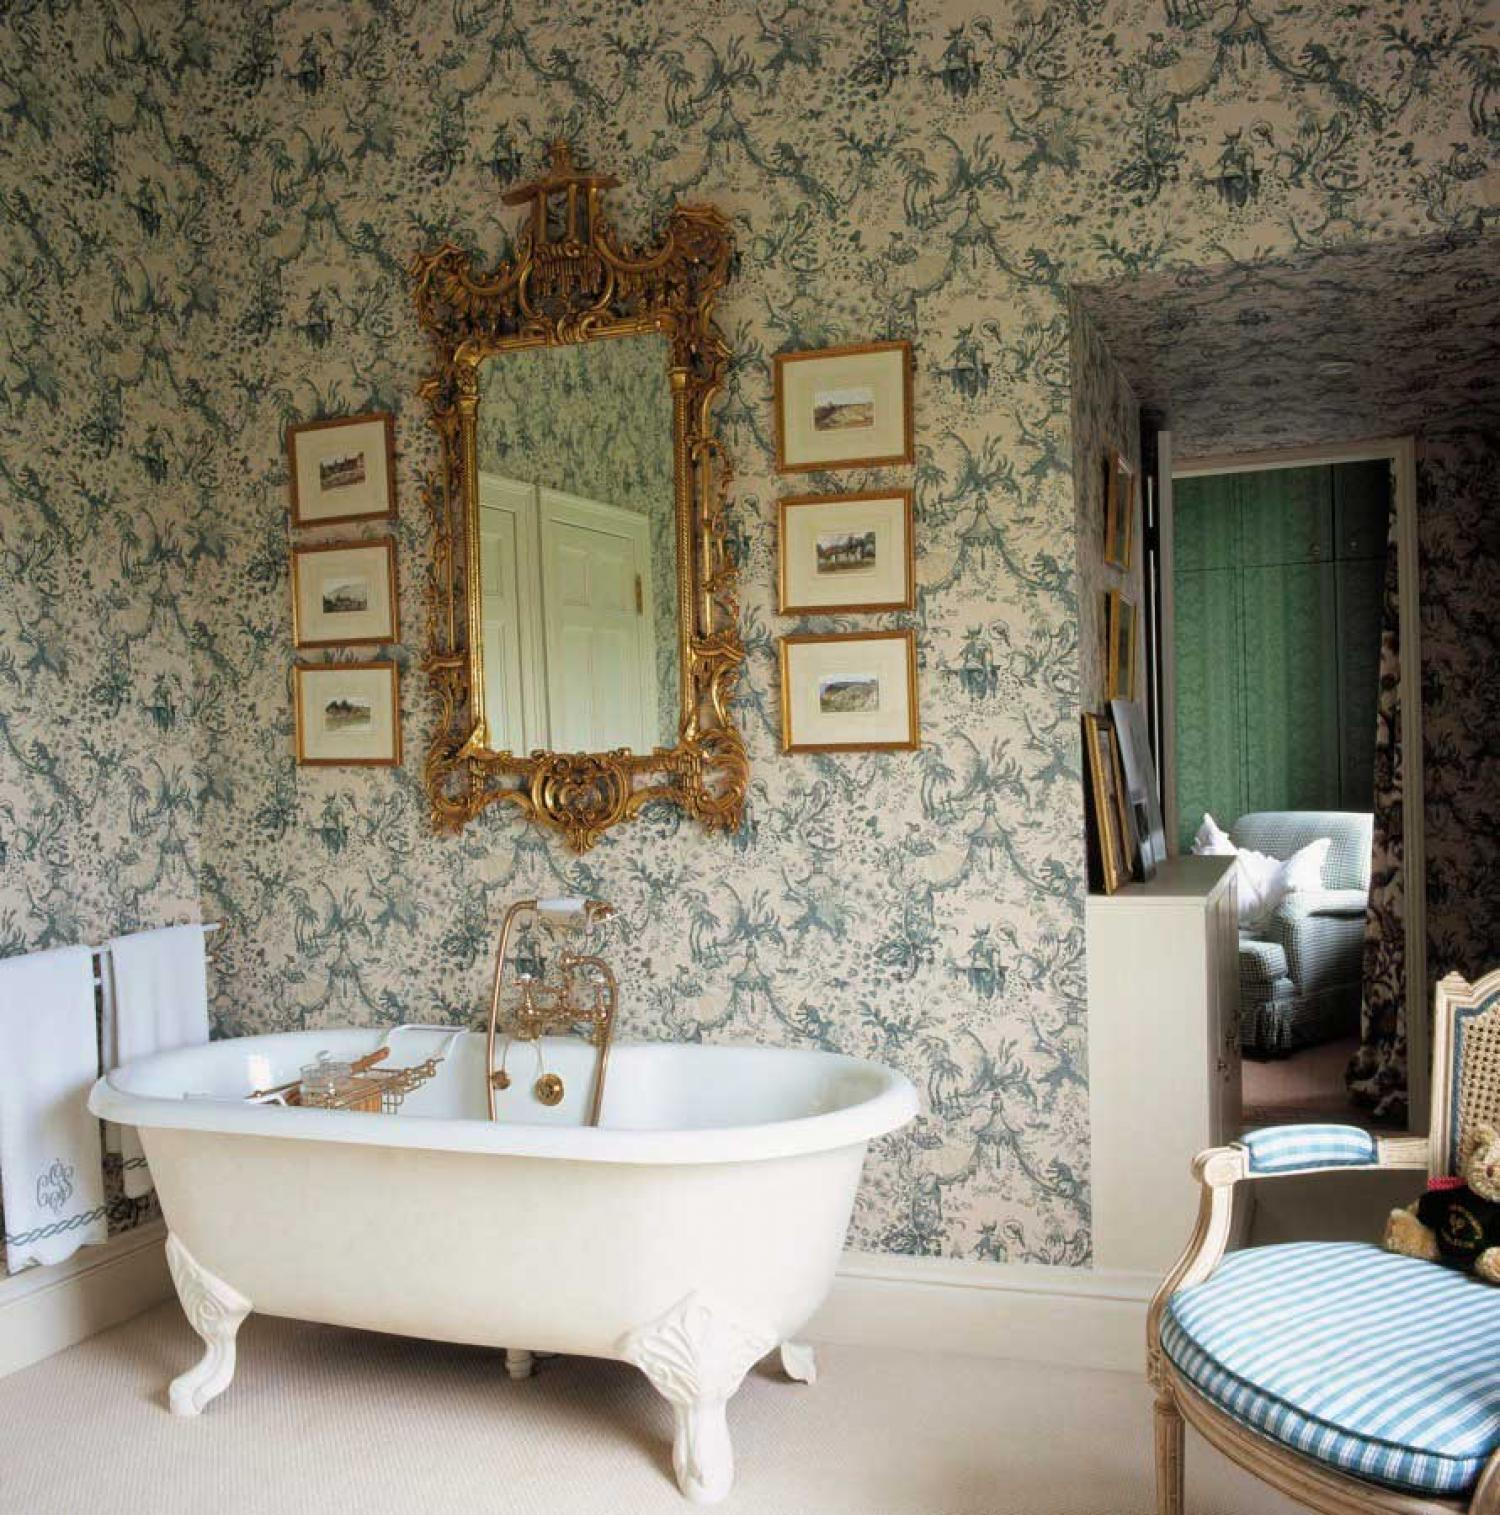 25 Wonderful Pictures Of Victorian Bathroom Tile Ideas 2019